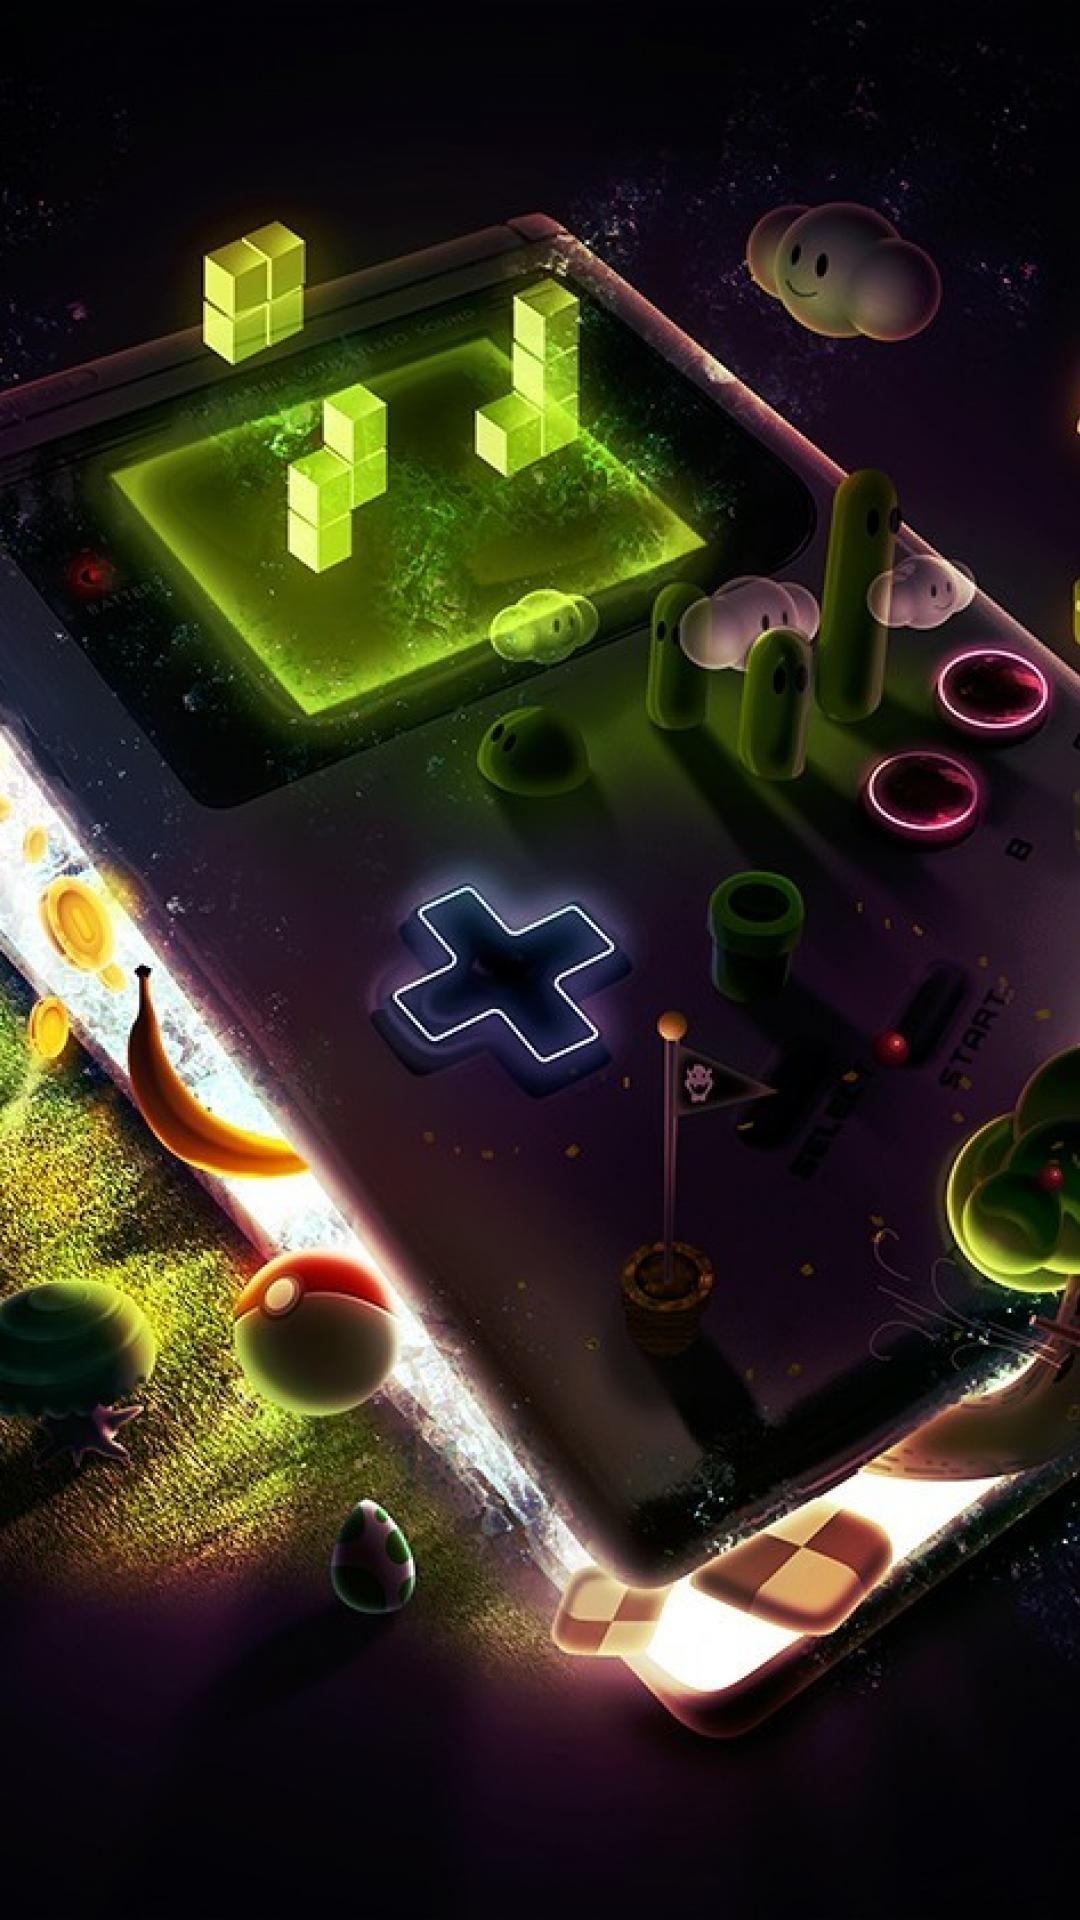 Game Boy iPhone Wallpapers - Top Free Game Boy iPhone ...